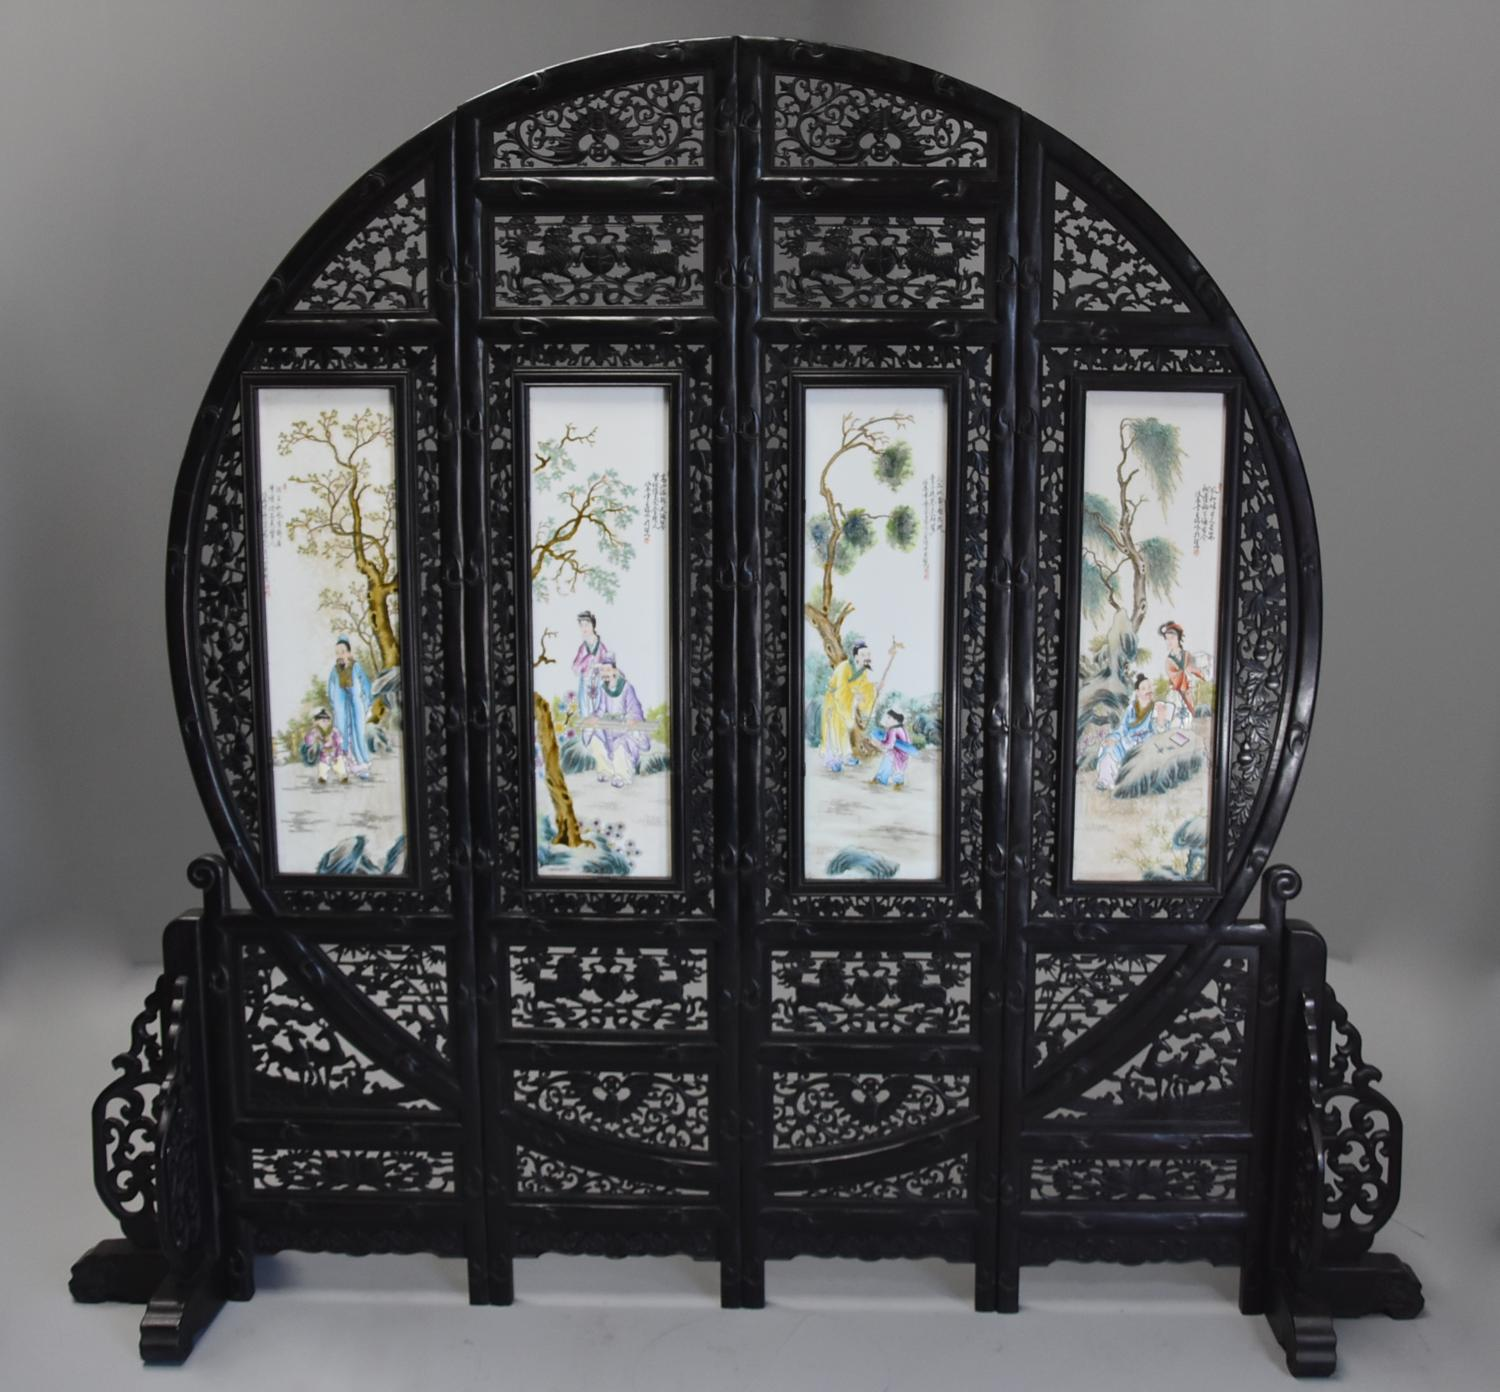 Highly decorative large Chinese carved hardwood four panel screen